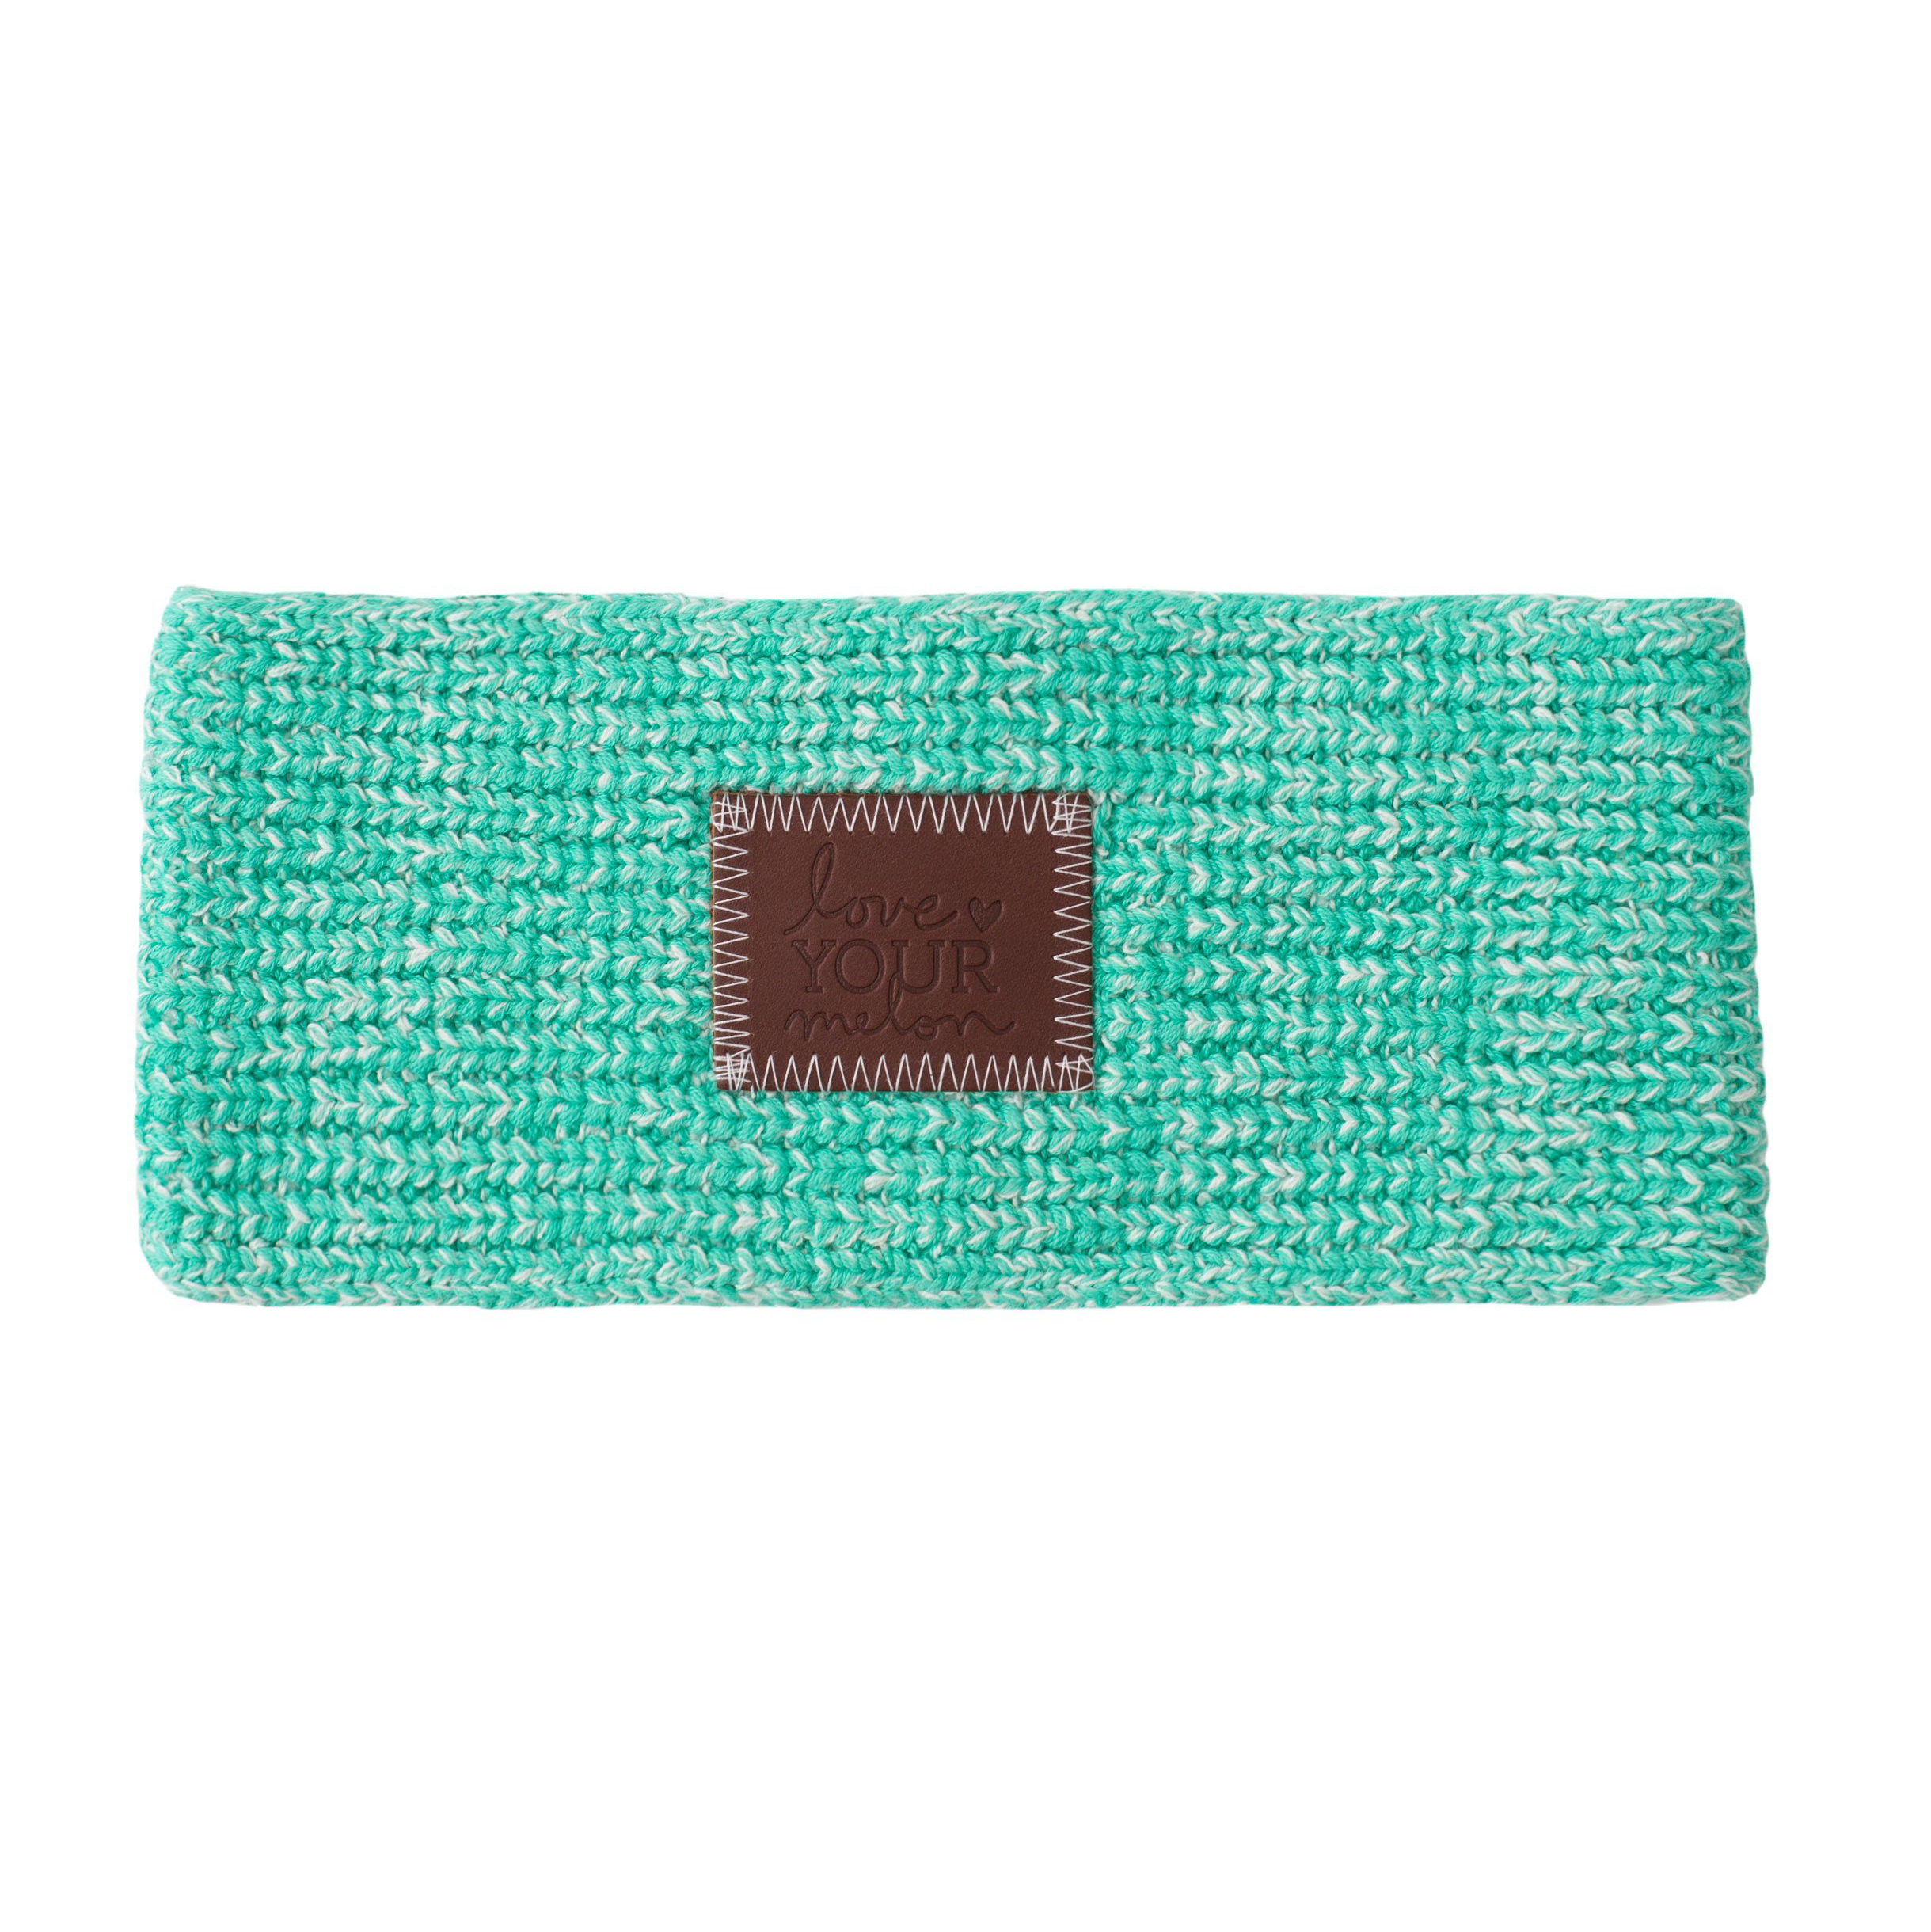 MINT AND WHITE SPECKLED KNIT HEADBAND